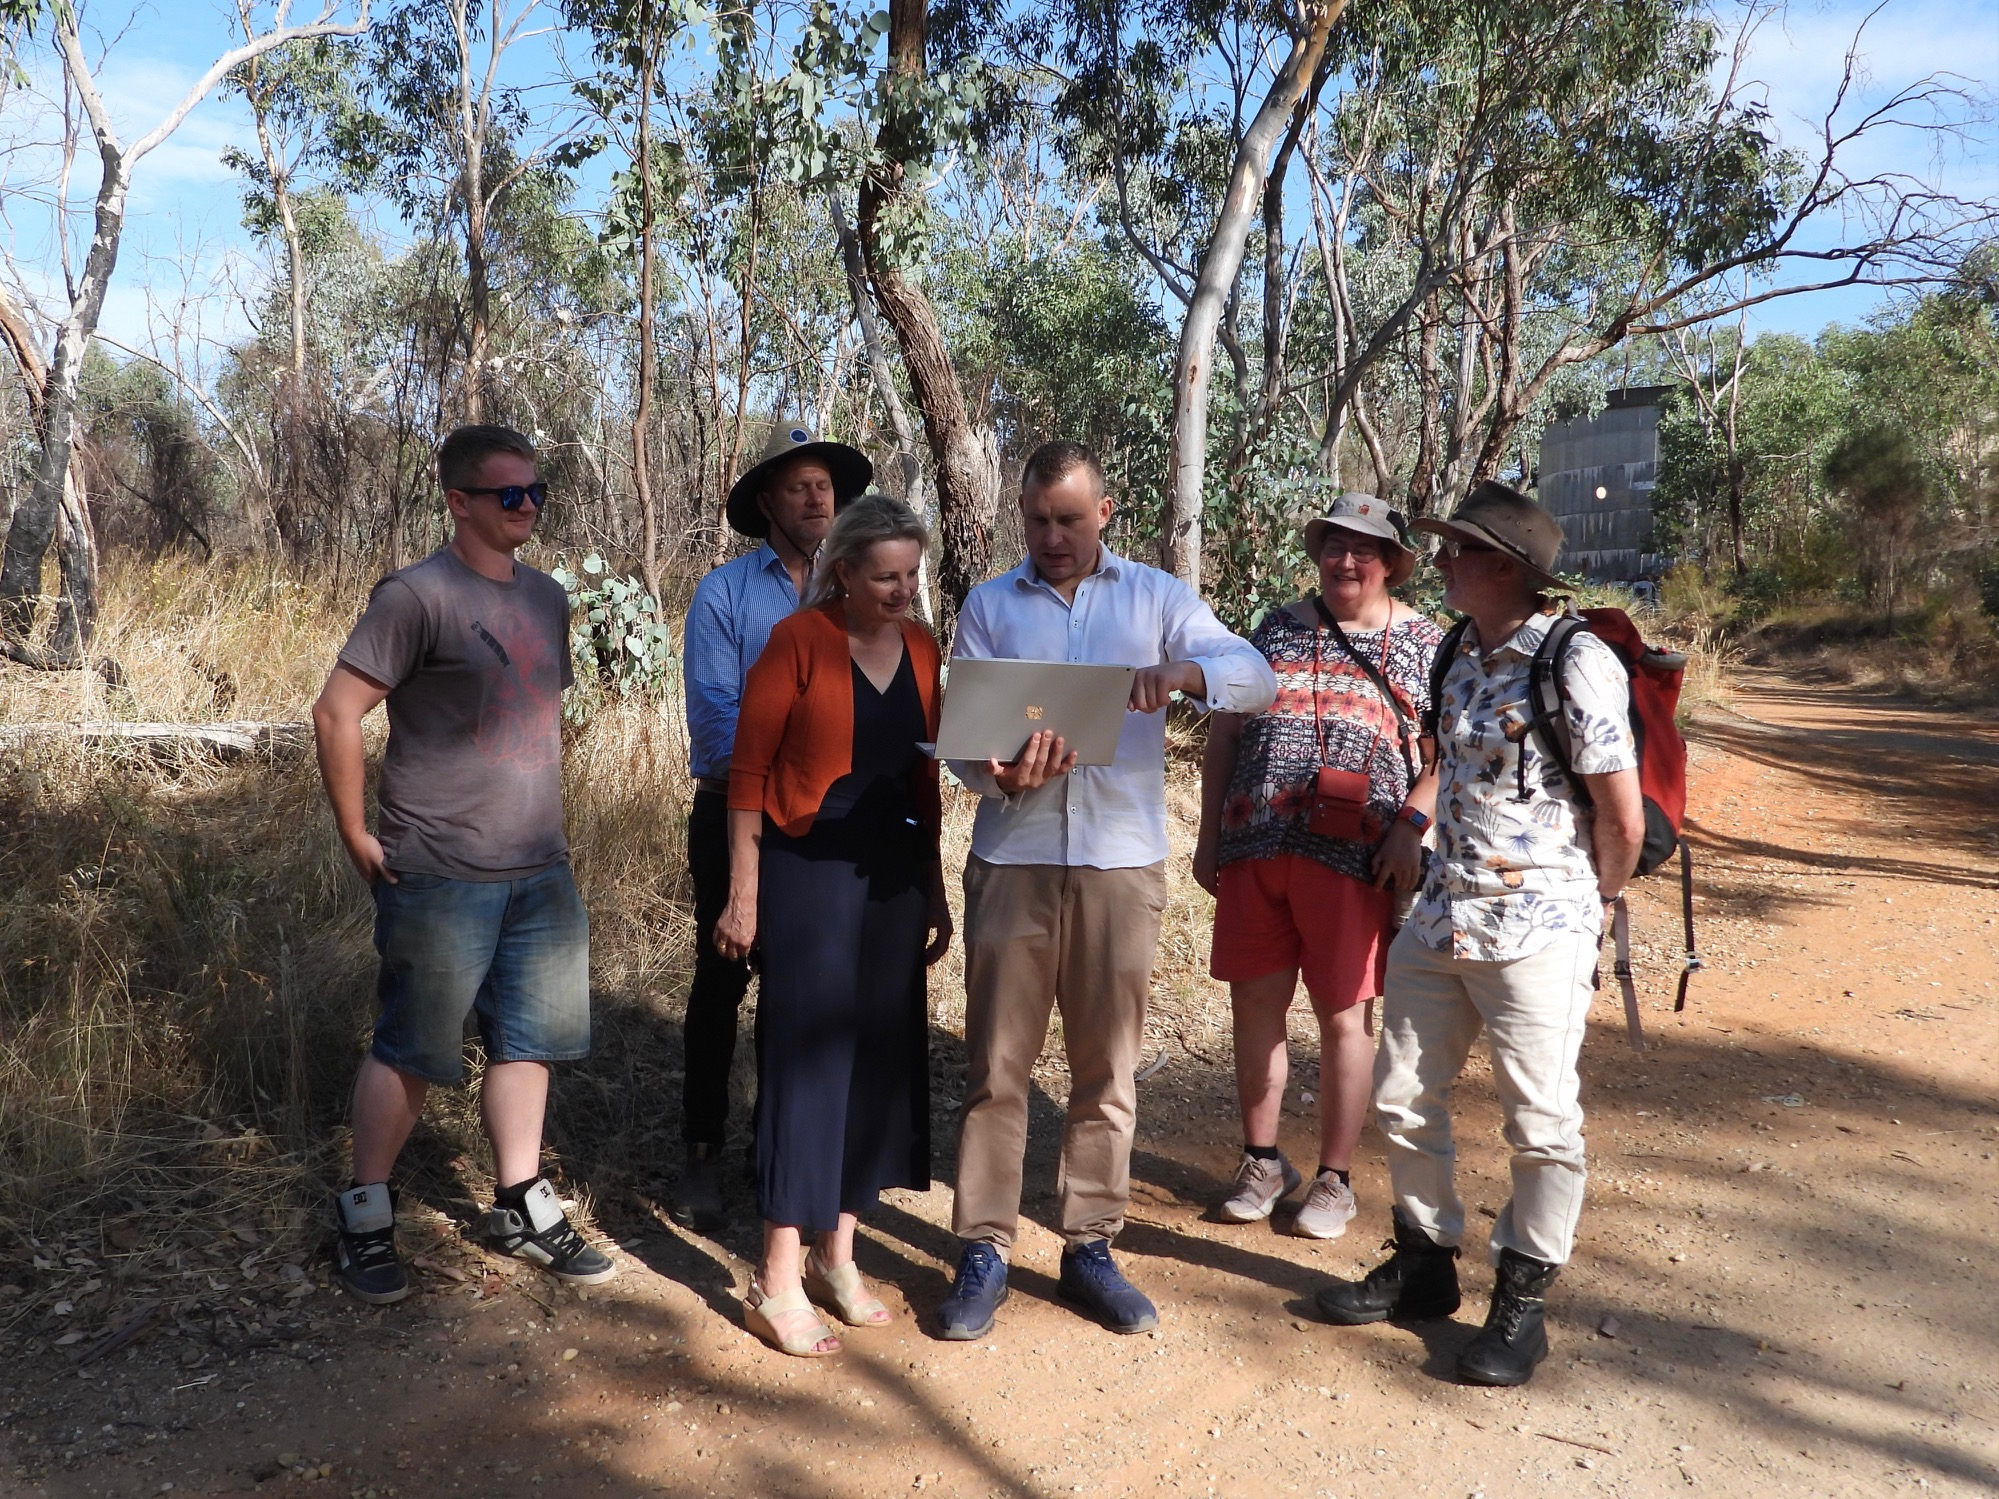 Sussan Ley MP receiving a demonstration of Albury Wodonga Nature Map from Aaron Clausen, co-founder of the NatureMapr citizen science platform (Photo by Amy Daeche)